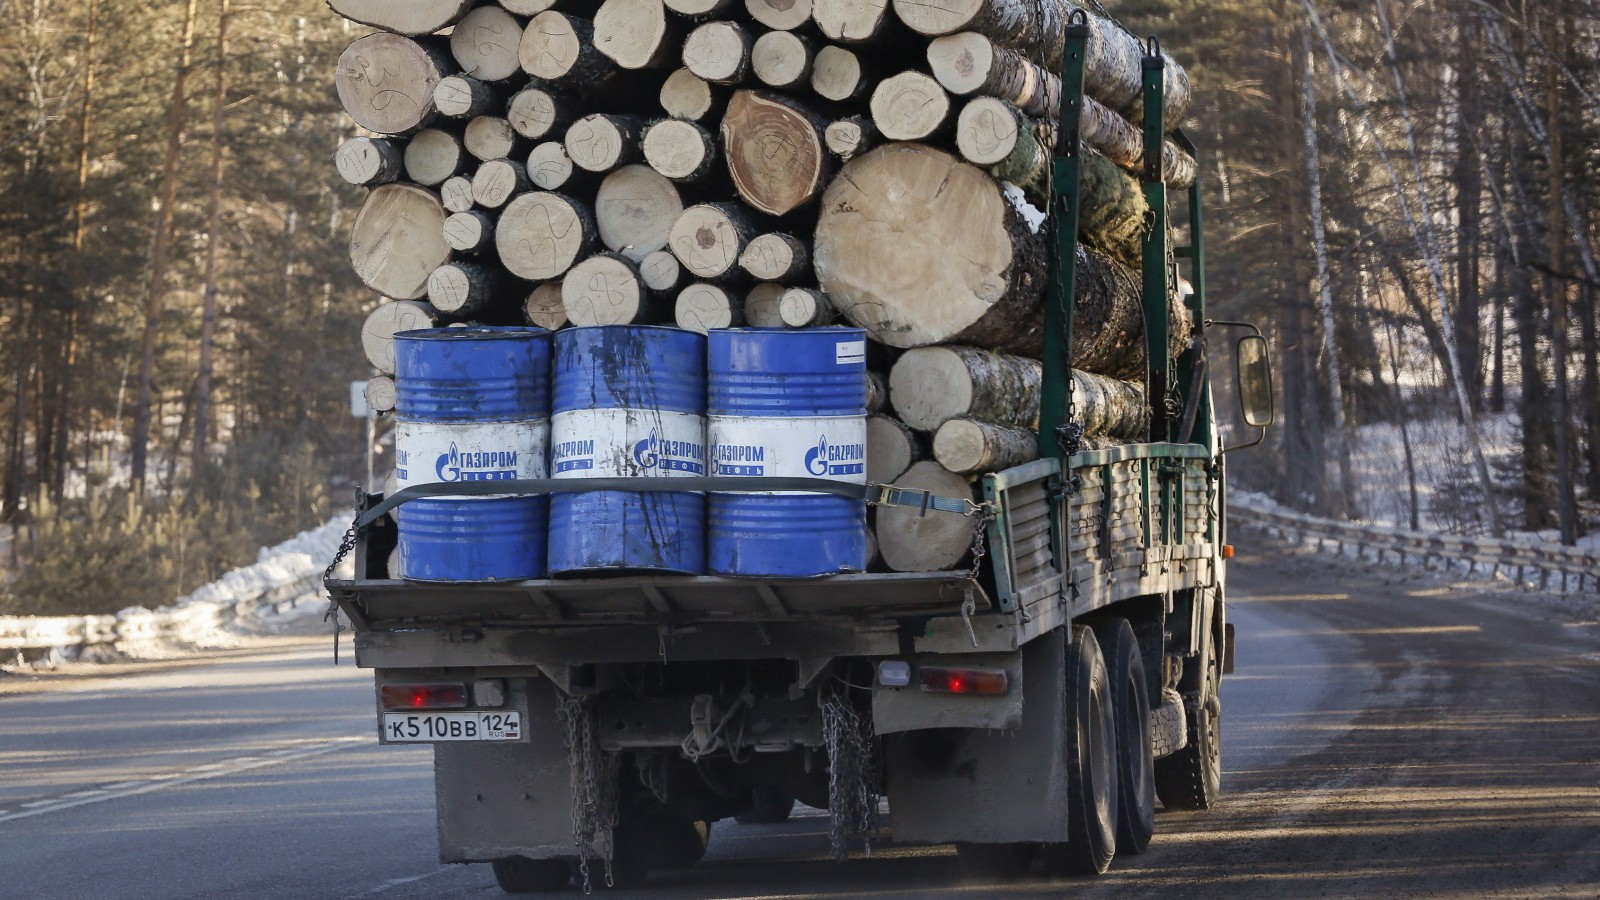 A truck carries wood and Gazprom Neft branded oil barrels along the M54 federal highway south of Siberian city of Krasnoyarsk, February 21, 2015. Picture taken February 21, 2015. REUTERS/Ilya Naymushin (RUSSIA - Tags: TRANSPORT ENERGY ENVIRONMENT BUSINESS INDUSTRIAL) - RTR4QL1K